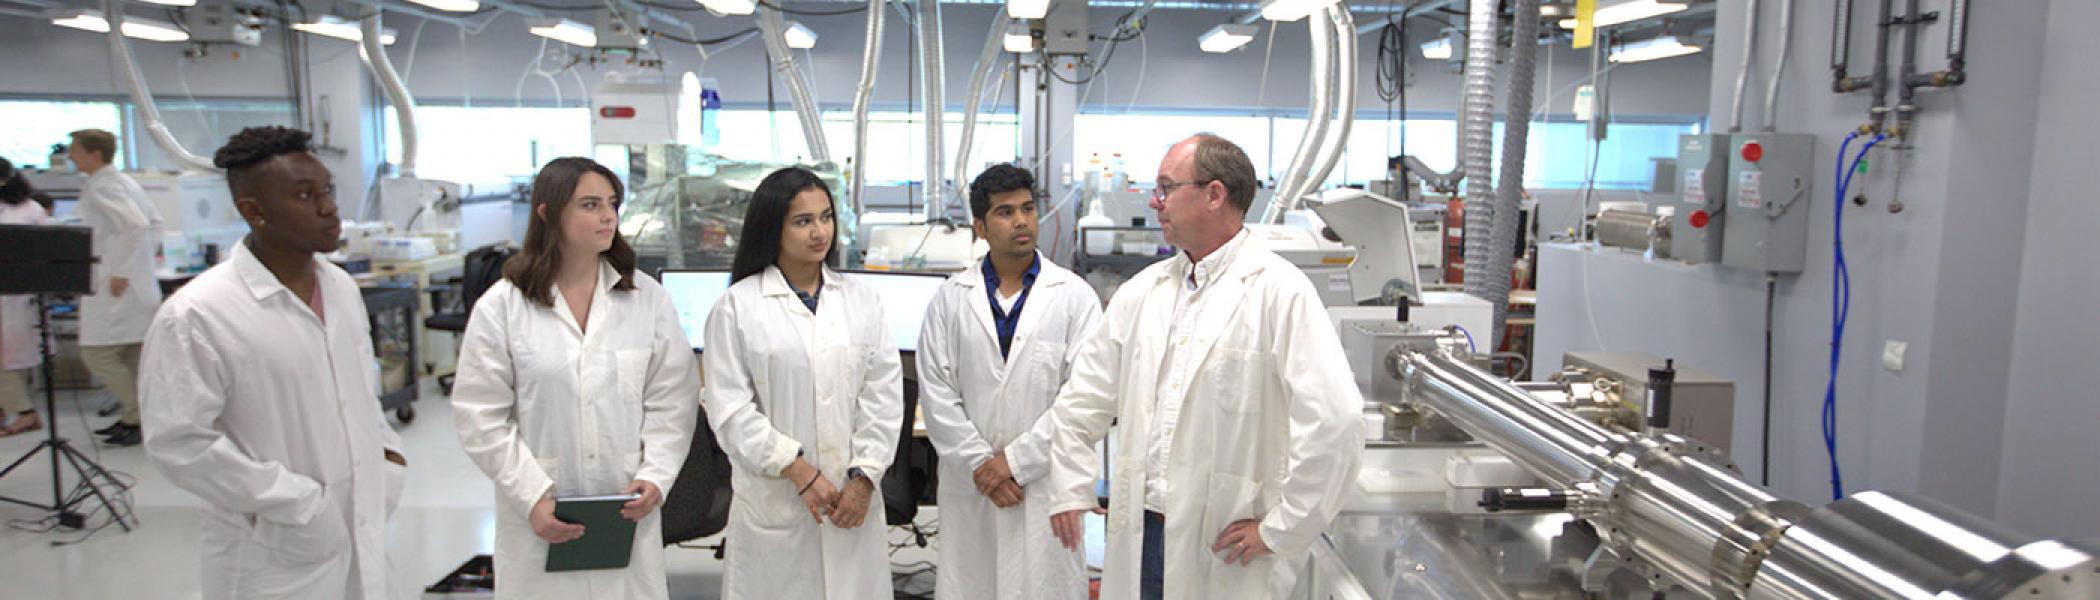 group of students and professor in lab coats in the water quality centre